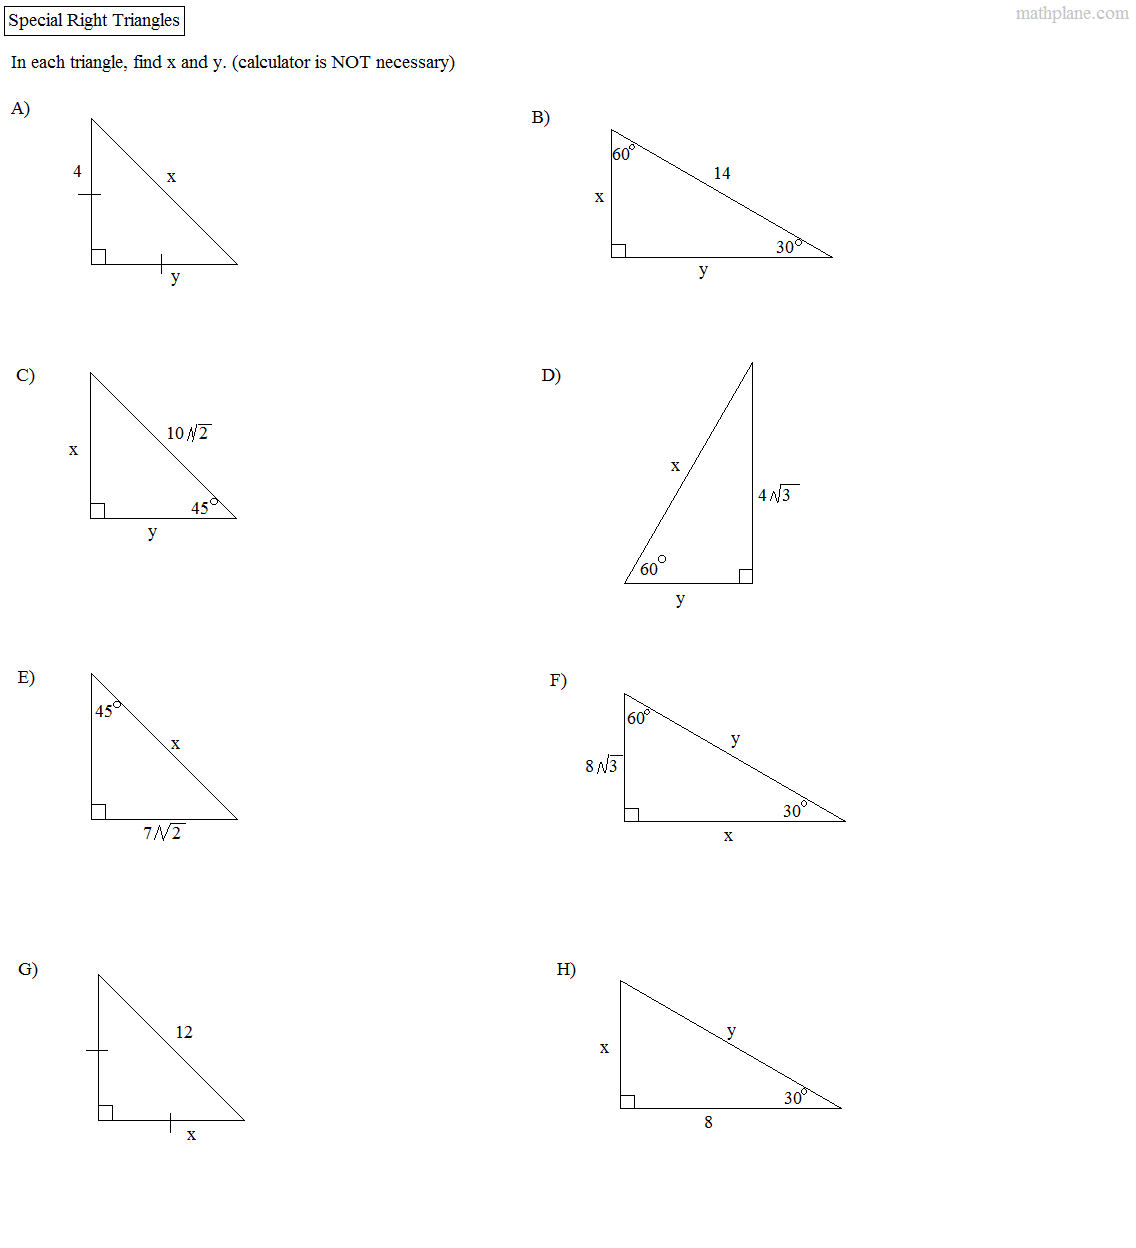 23+ Kuta Software Special Right Triangles Extra Practice Images